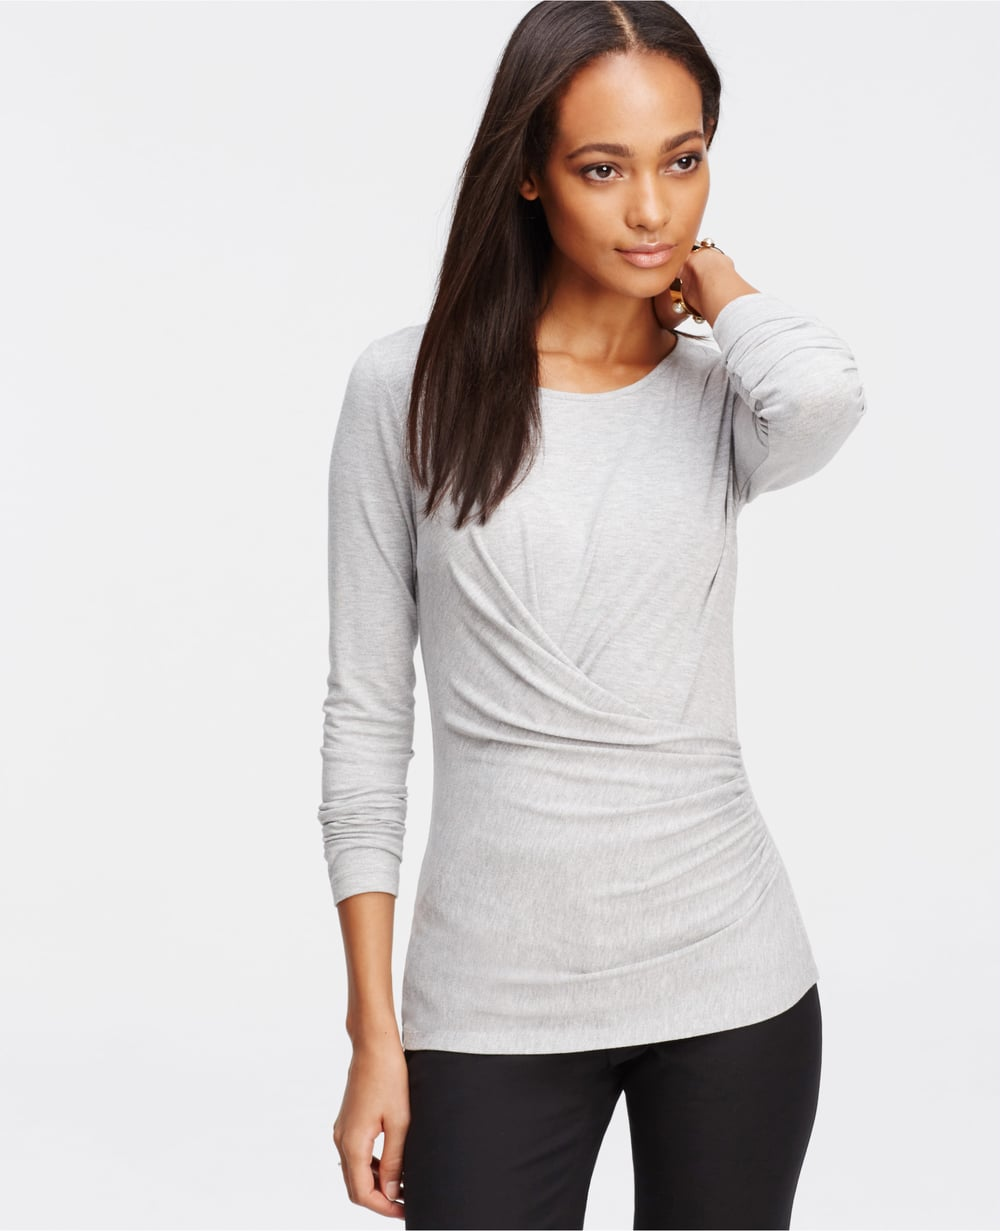 Ruched Long Sleeve Top. Ann Taylor. $59.